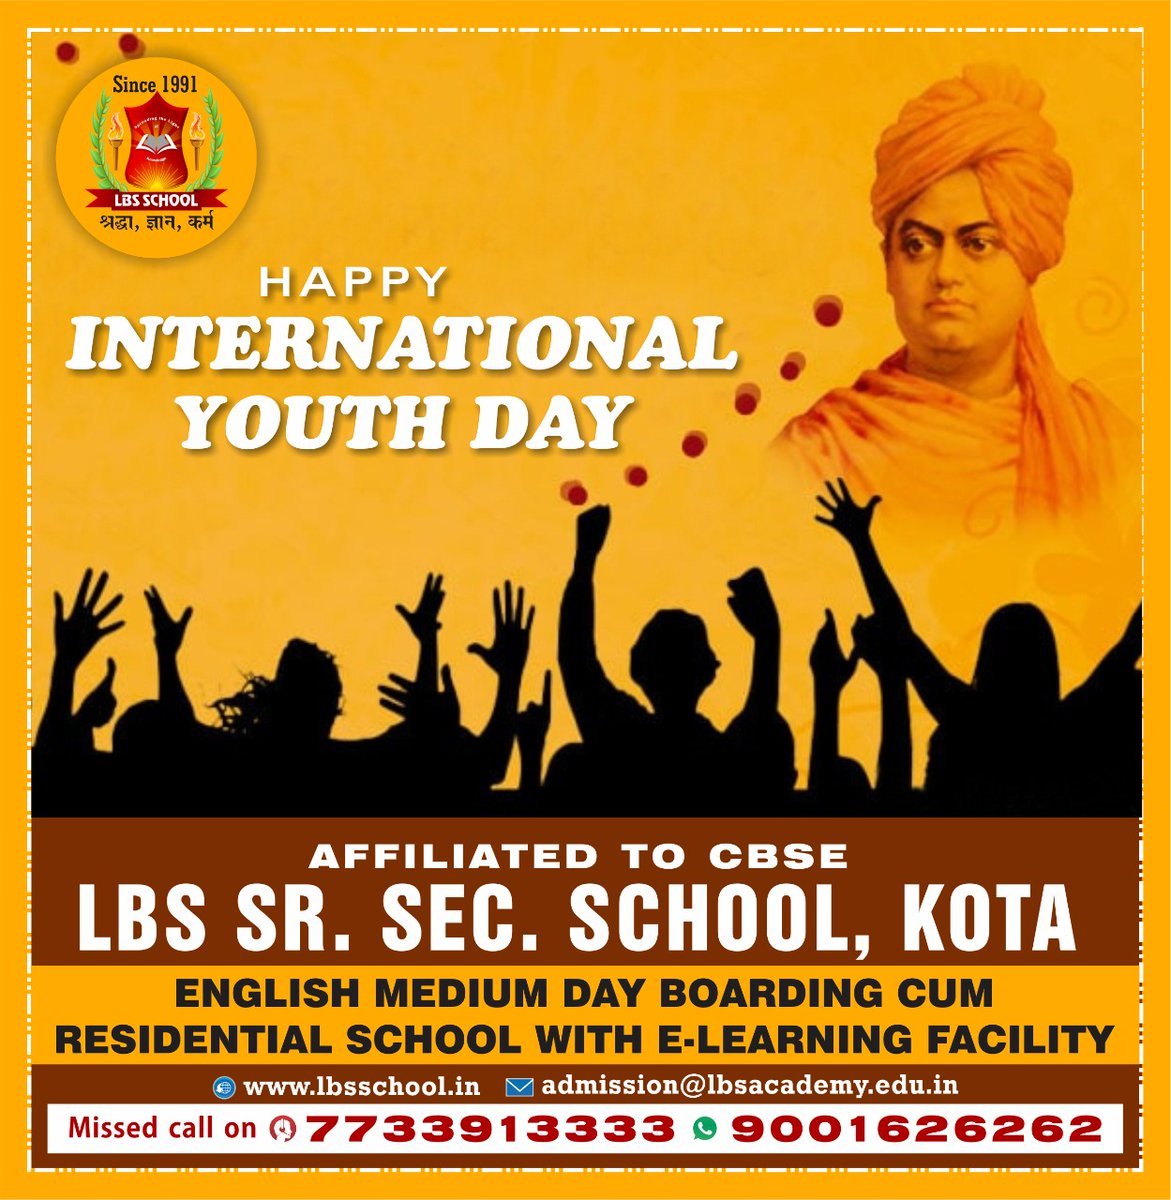 You are only young once, and if you work it right, once is enough. 𝐇𝐚𝐩𝐩𝐲 𝐈𝐧𝐭𝐞𝐫𝐧𝐚𝐭𝐢𝐨𝐧𝐚𝐥 𝐘𝐨𝐮𝐭𝐡 𝐃𝐚𝐲!!!  #swamivivekananda #vivekananda #youth #india #swamivivekanandajayanti #YouthDay https://t.co/gAaknnsgAy